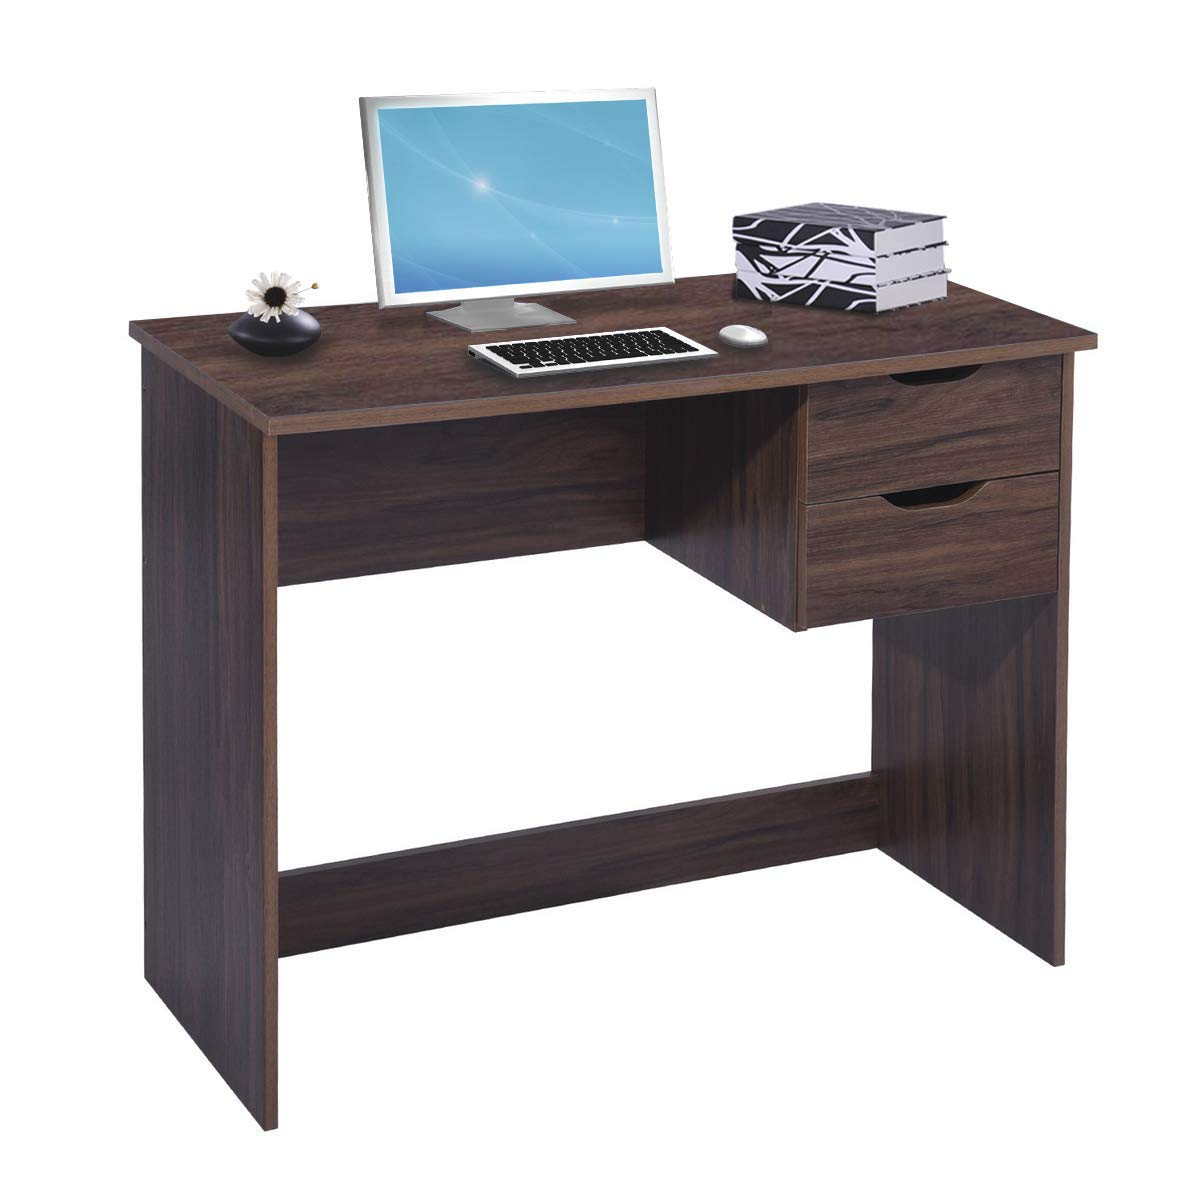 Brown Computer Desk Writing Study Table with 2 Side Drawers Classic Home Office Laptop Desk Brown Wood Notebook Table (35.4x17.7x29.1 Inches)